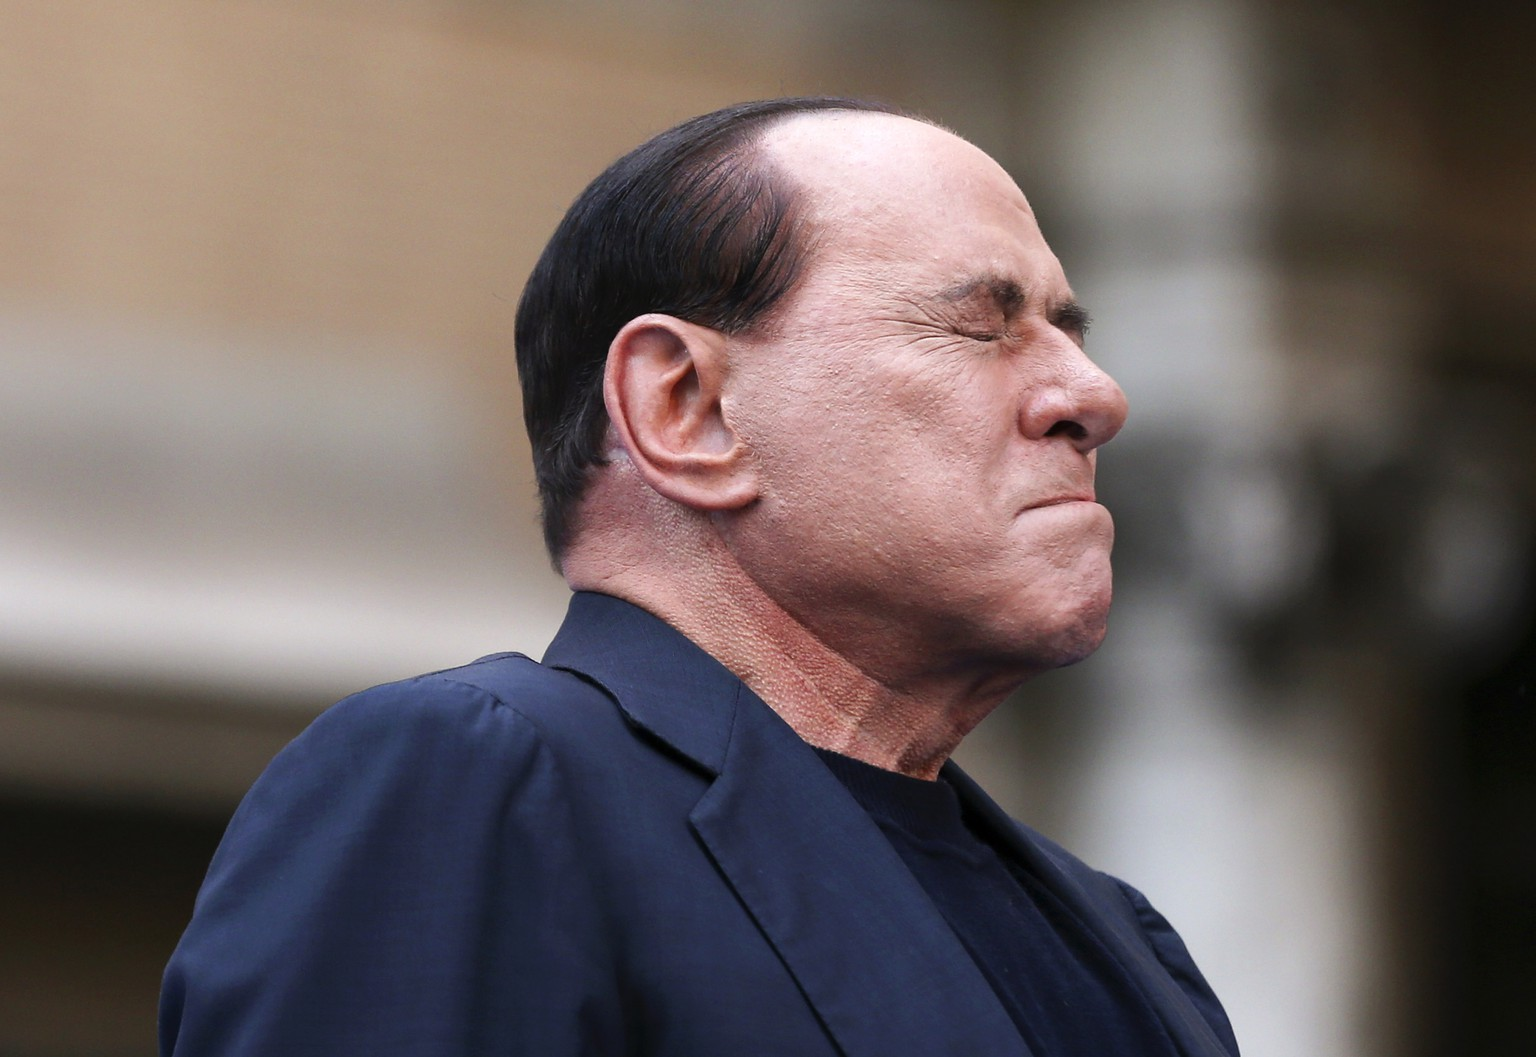 Former Italian Prime Minister Silvio Berlusconi closes his eyes in a gesture to supporters during a rally to protest his tax fraud conviction, outside his palace in central Rome in this August 4, 2013 file photo. Both the prosecution and defence have asked a Milan court to order former Prime Minister Silvio Berlusconi to serve a one-year sentence for tax fraud doing community service, judicial sources said on April 10, 2014. The judge told reporters after the first day of hearings that the court would decide in 5-15 days what kind of punishment the centre-right leader will receive.